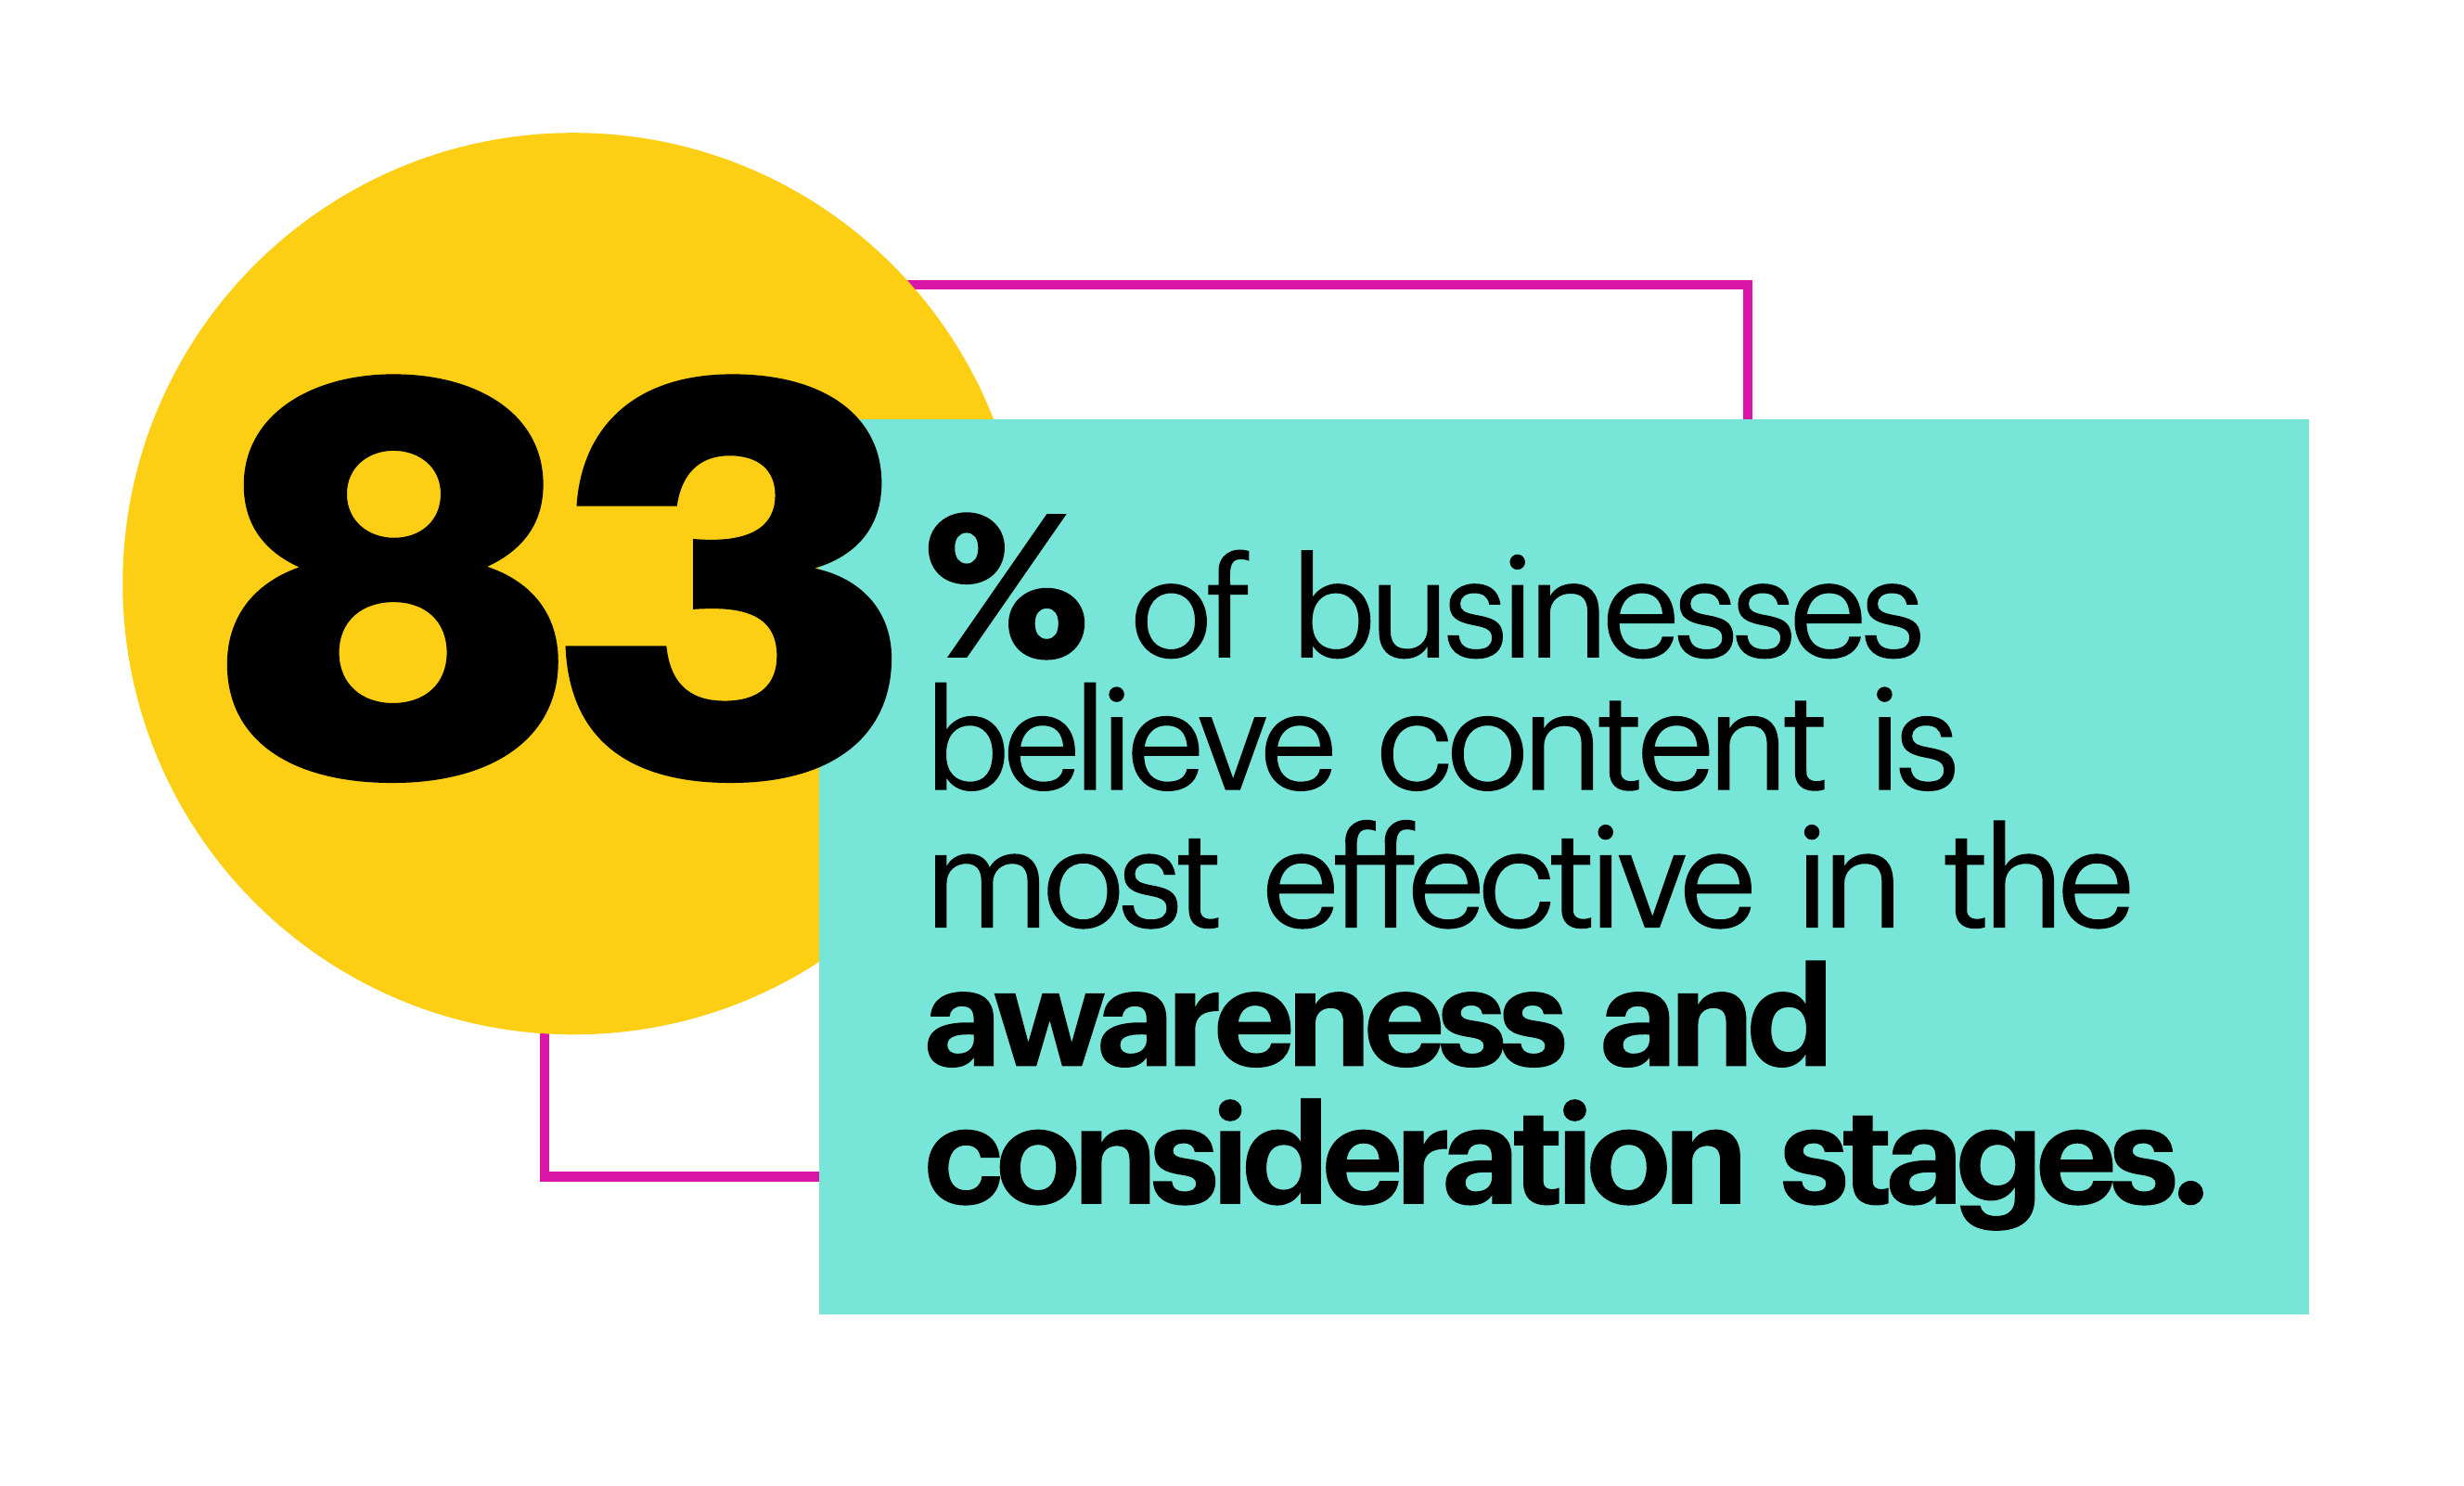 83% of businesses believe content is most effective in the awareness and consideration stages.